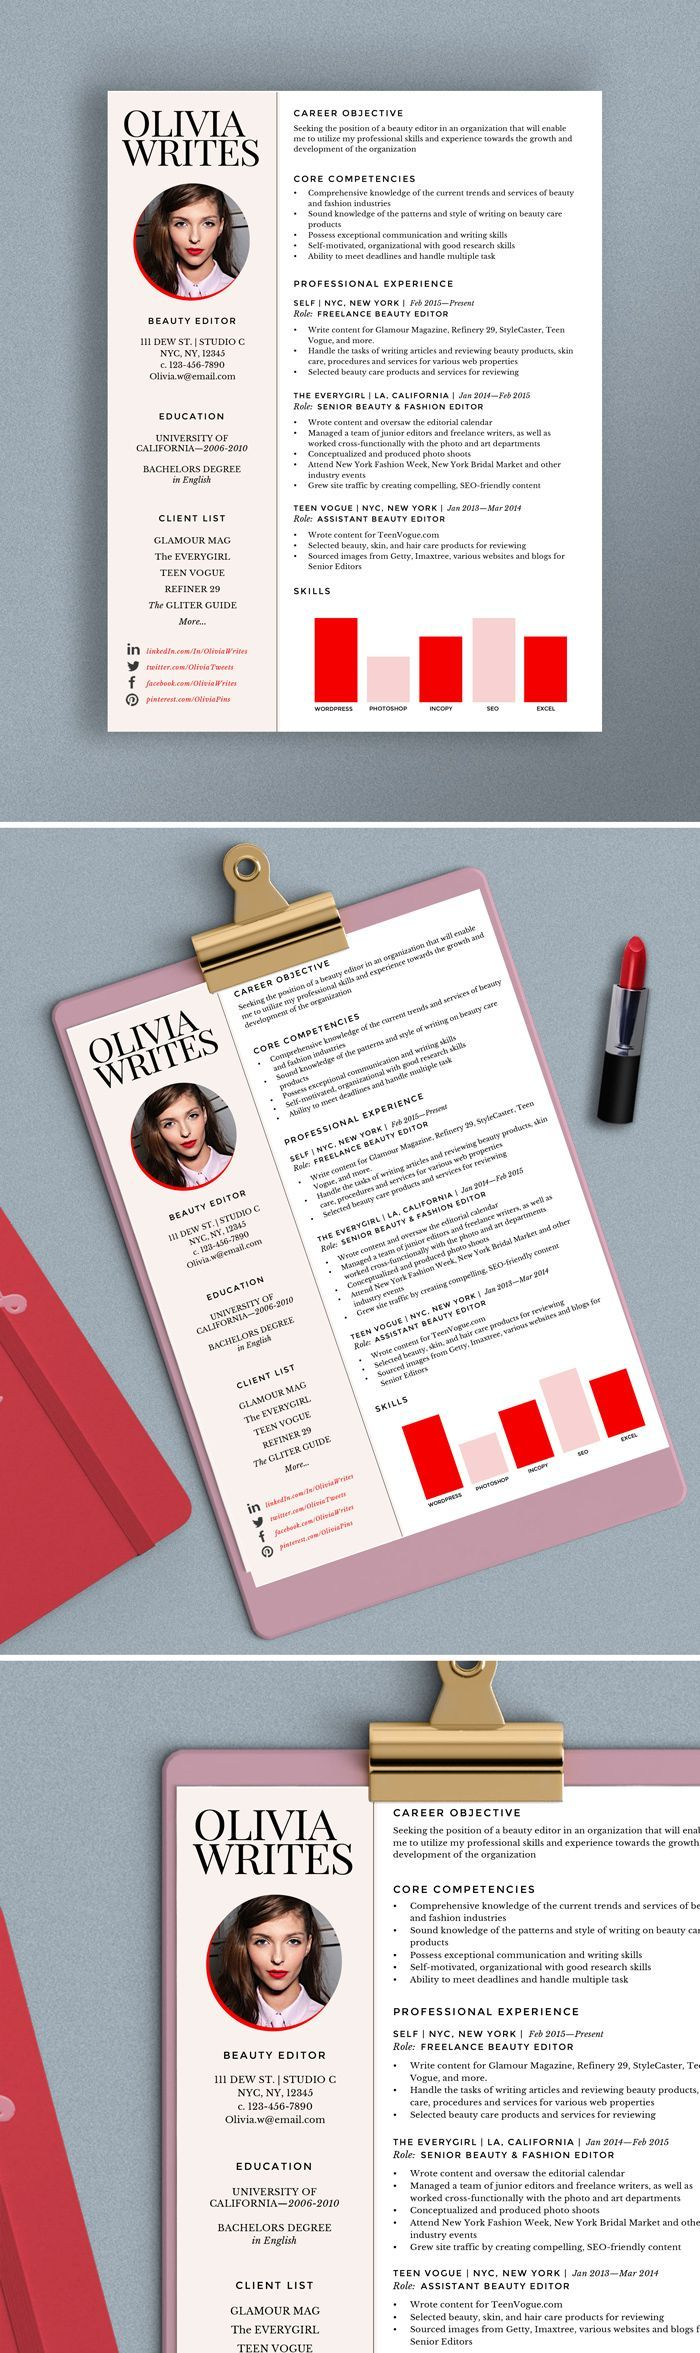 fashion editor resume examples